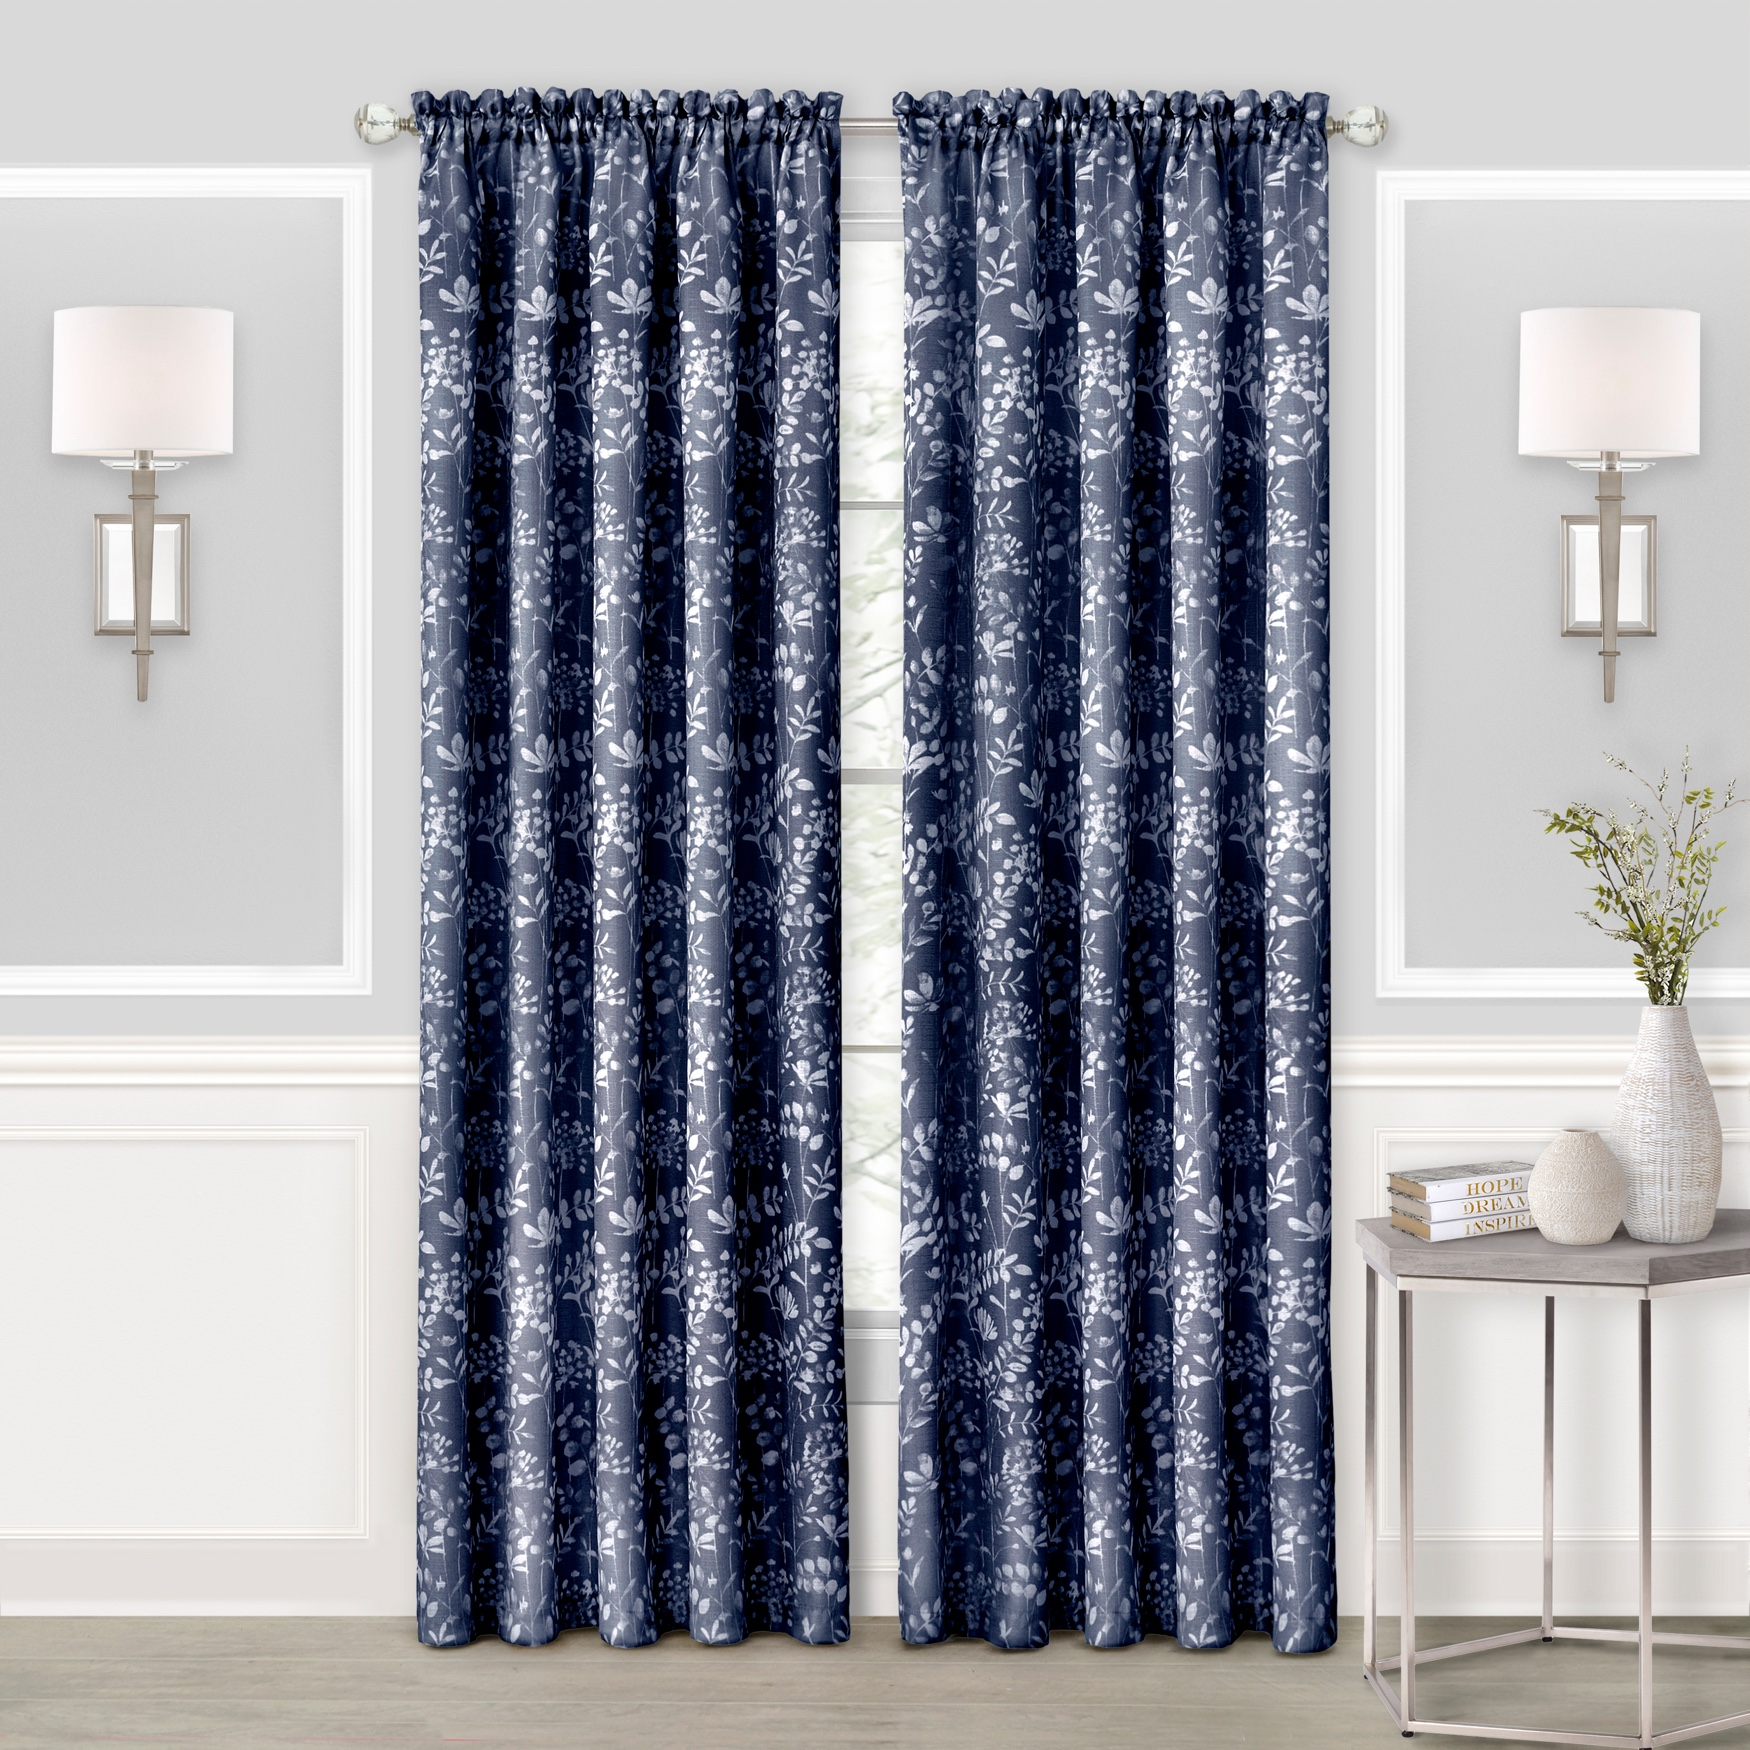 Charlotte Rod Pocket Window Curtain Panel,